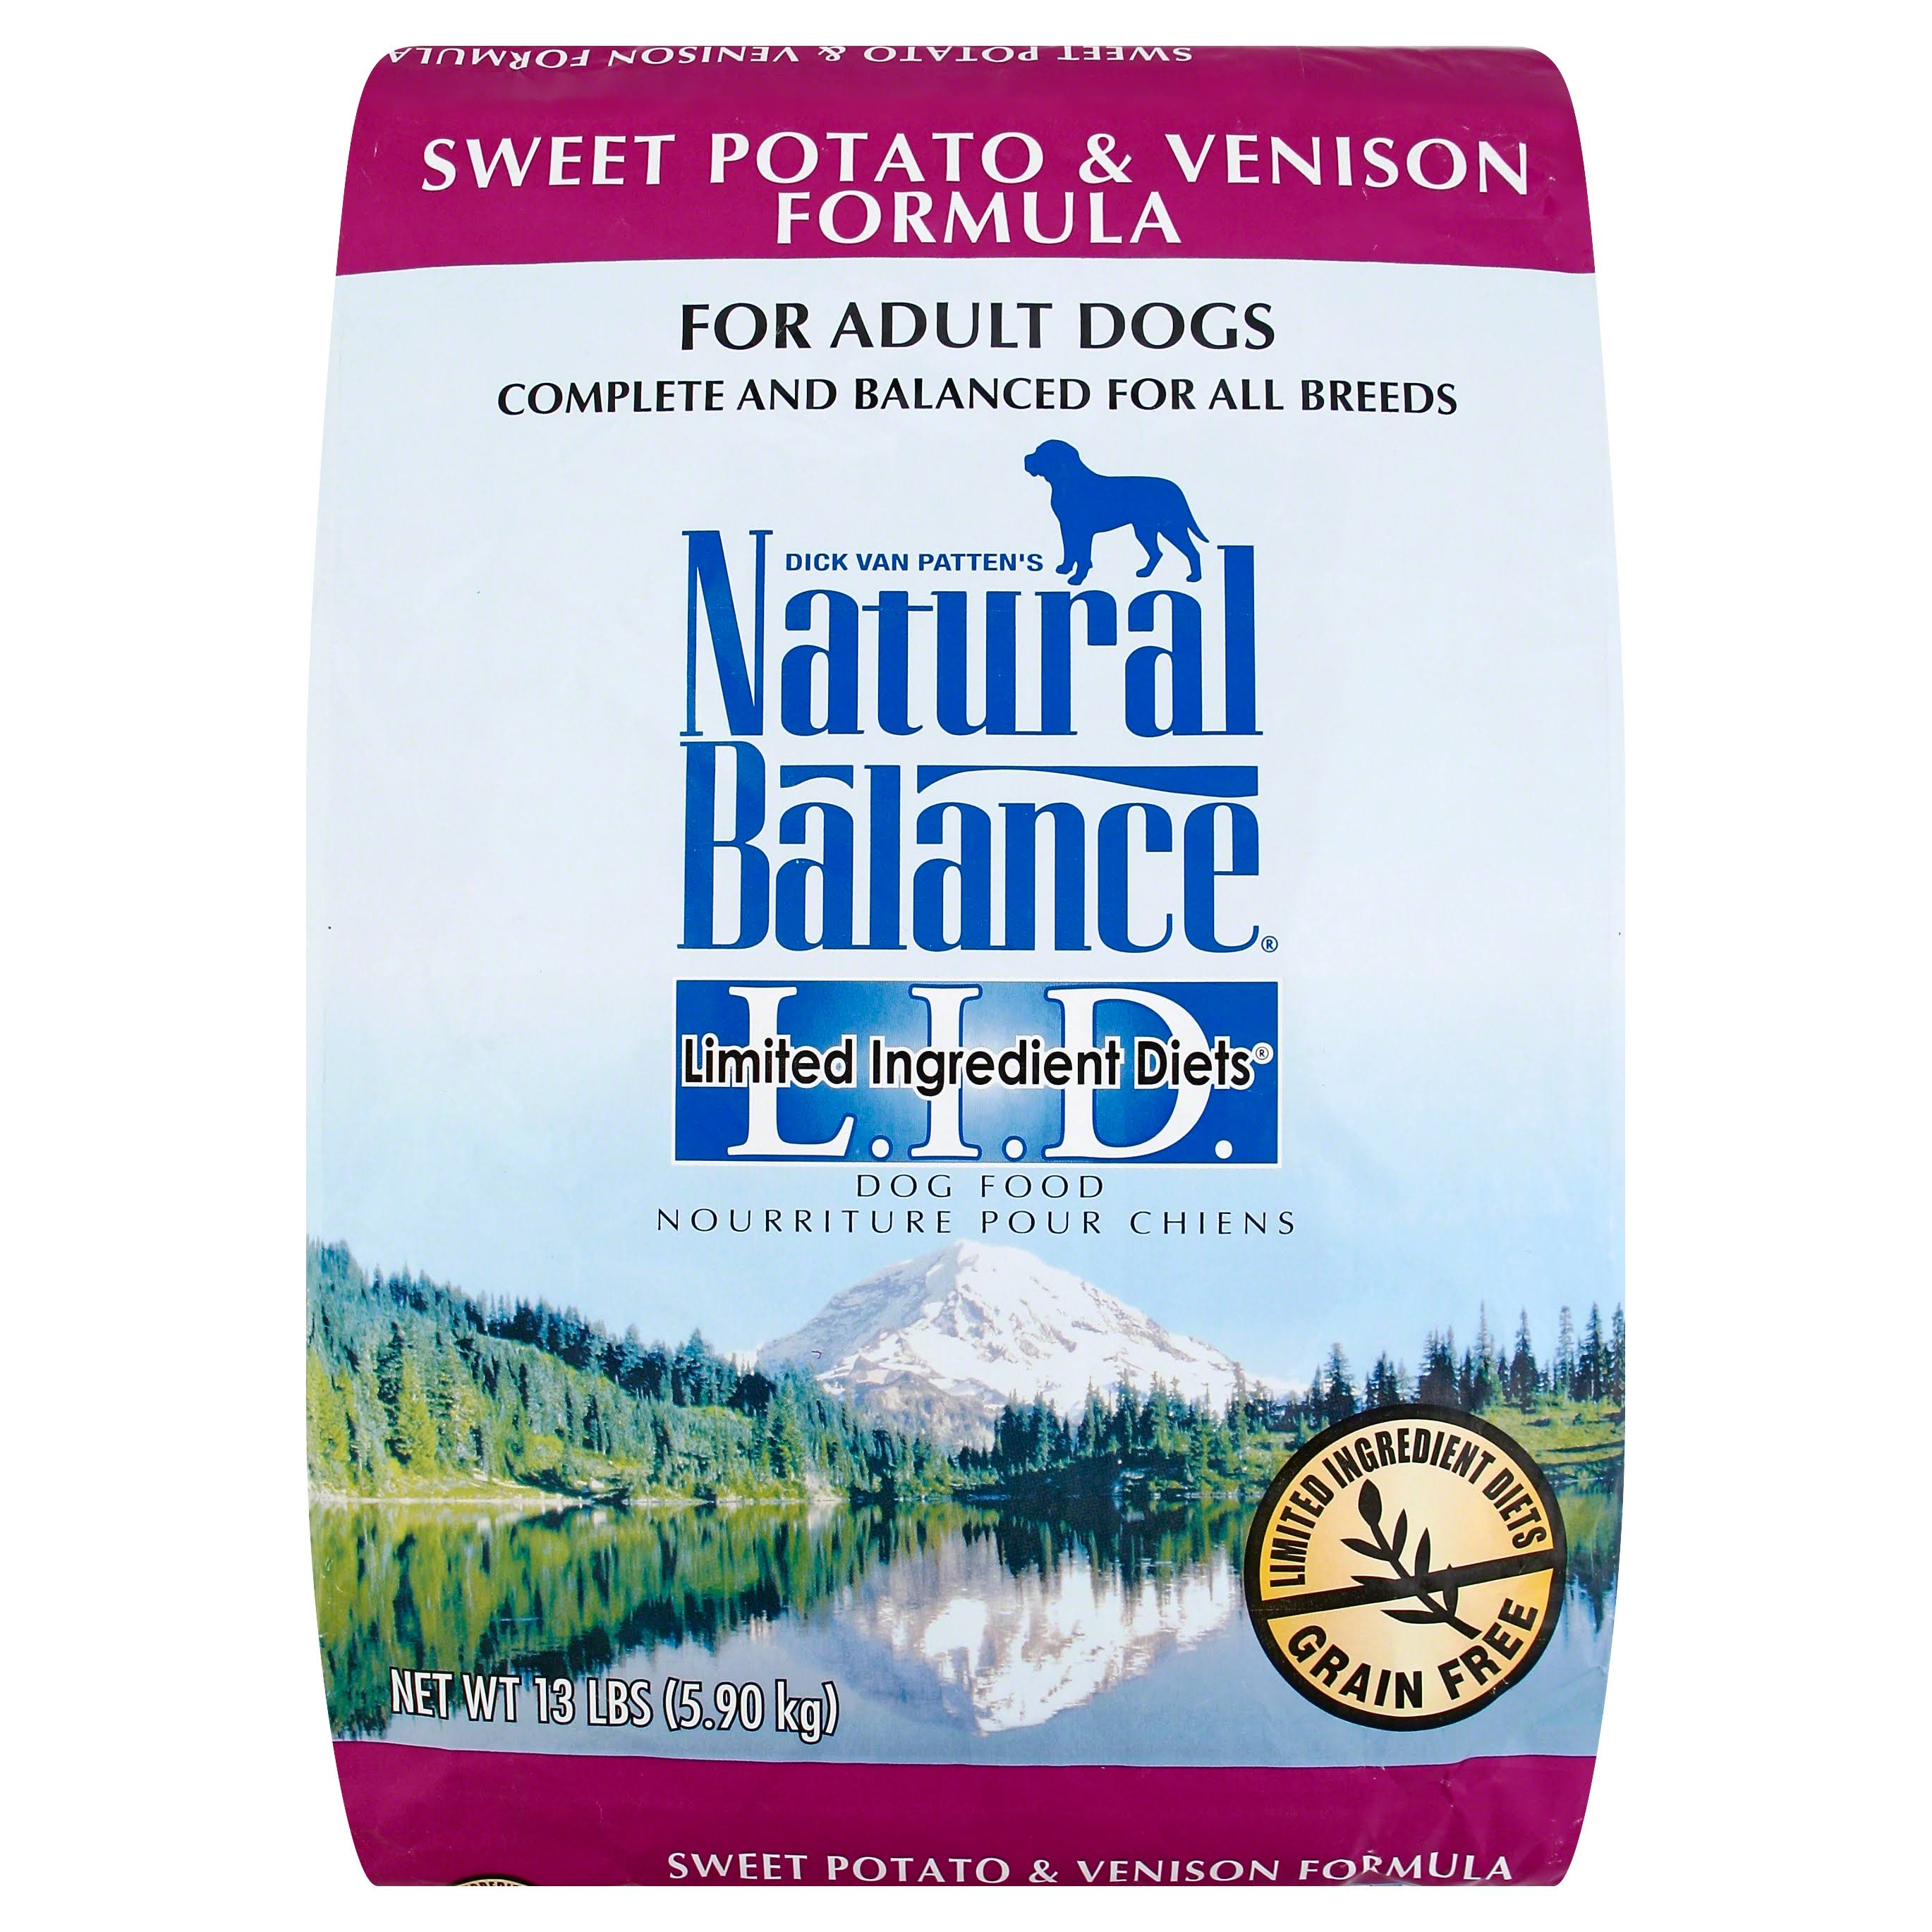 Natural Balance Limited Ingredient Diets Dog Food - Sweet Potato and Venison Formula